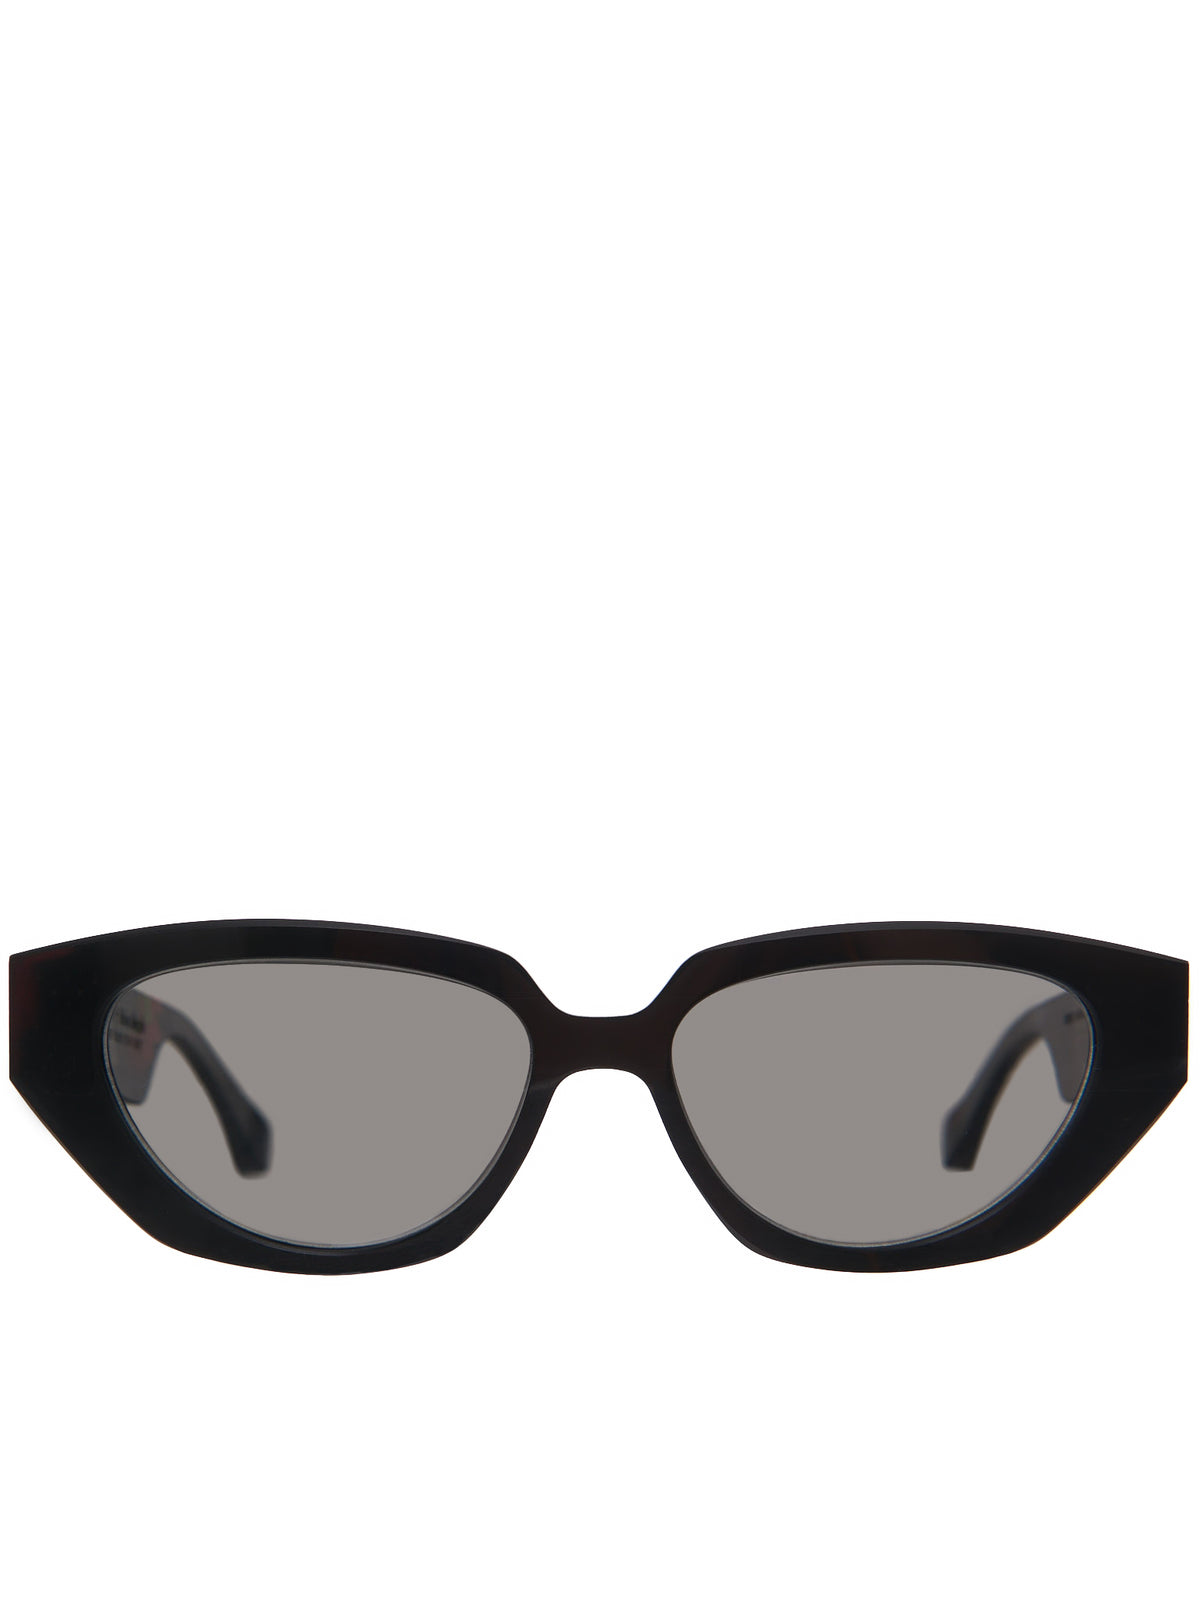 Tonal Sunglasses (MMRAW015-RAW-BLACK-GREY-SOLID)